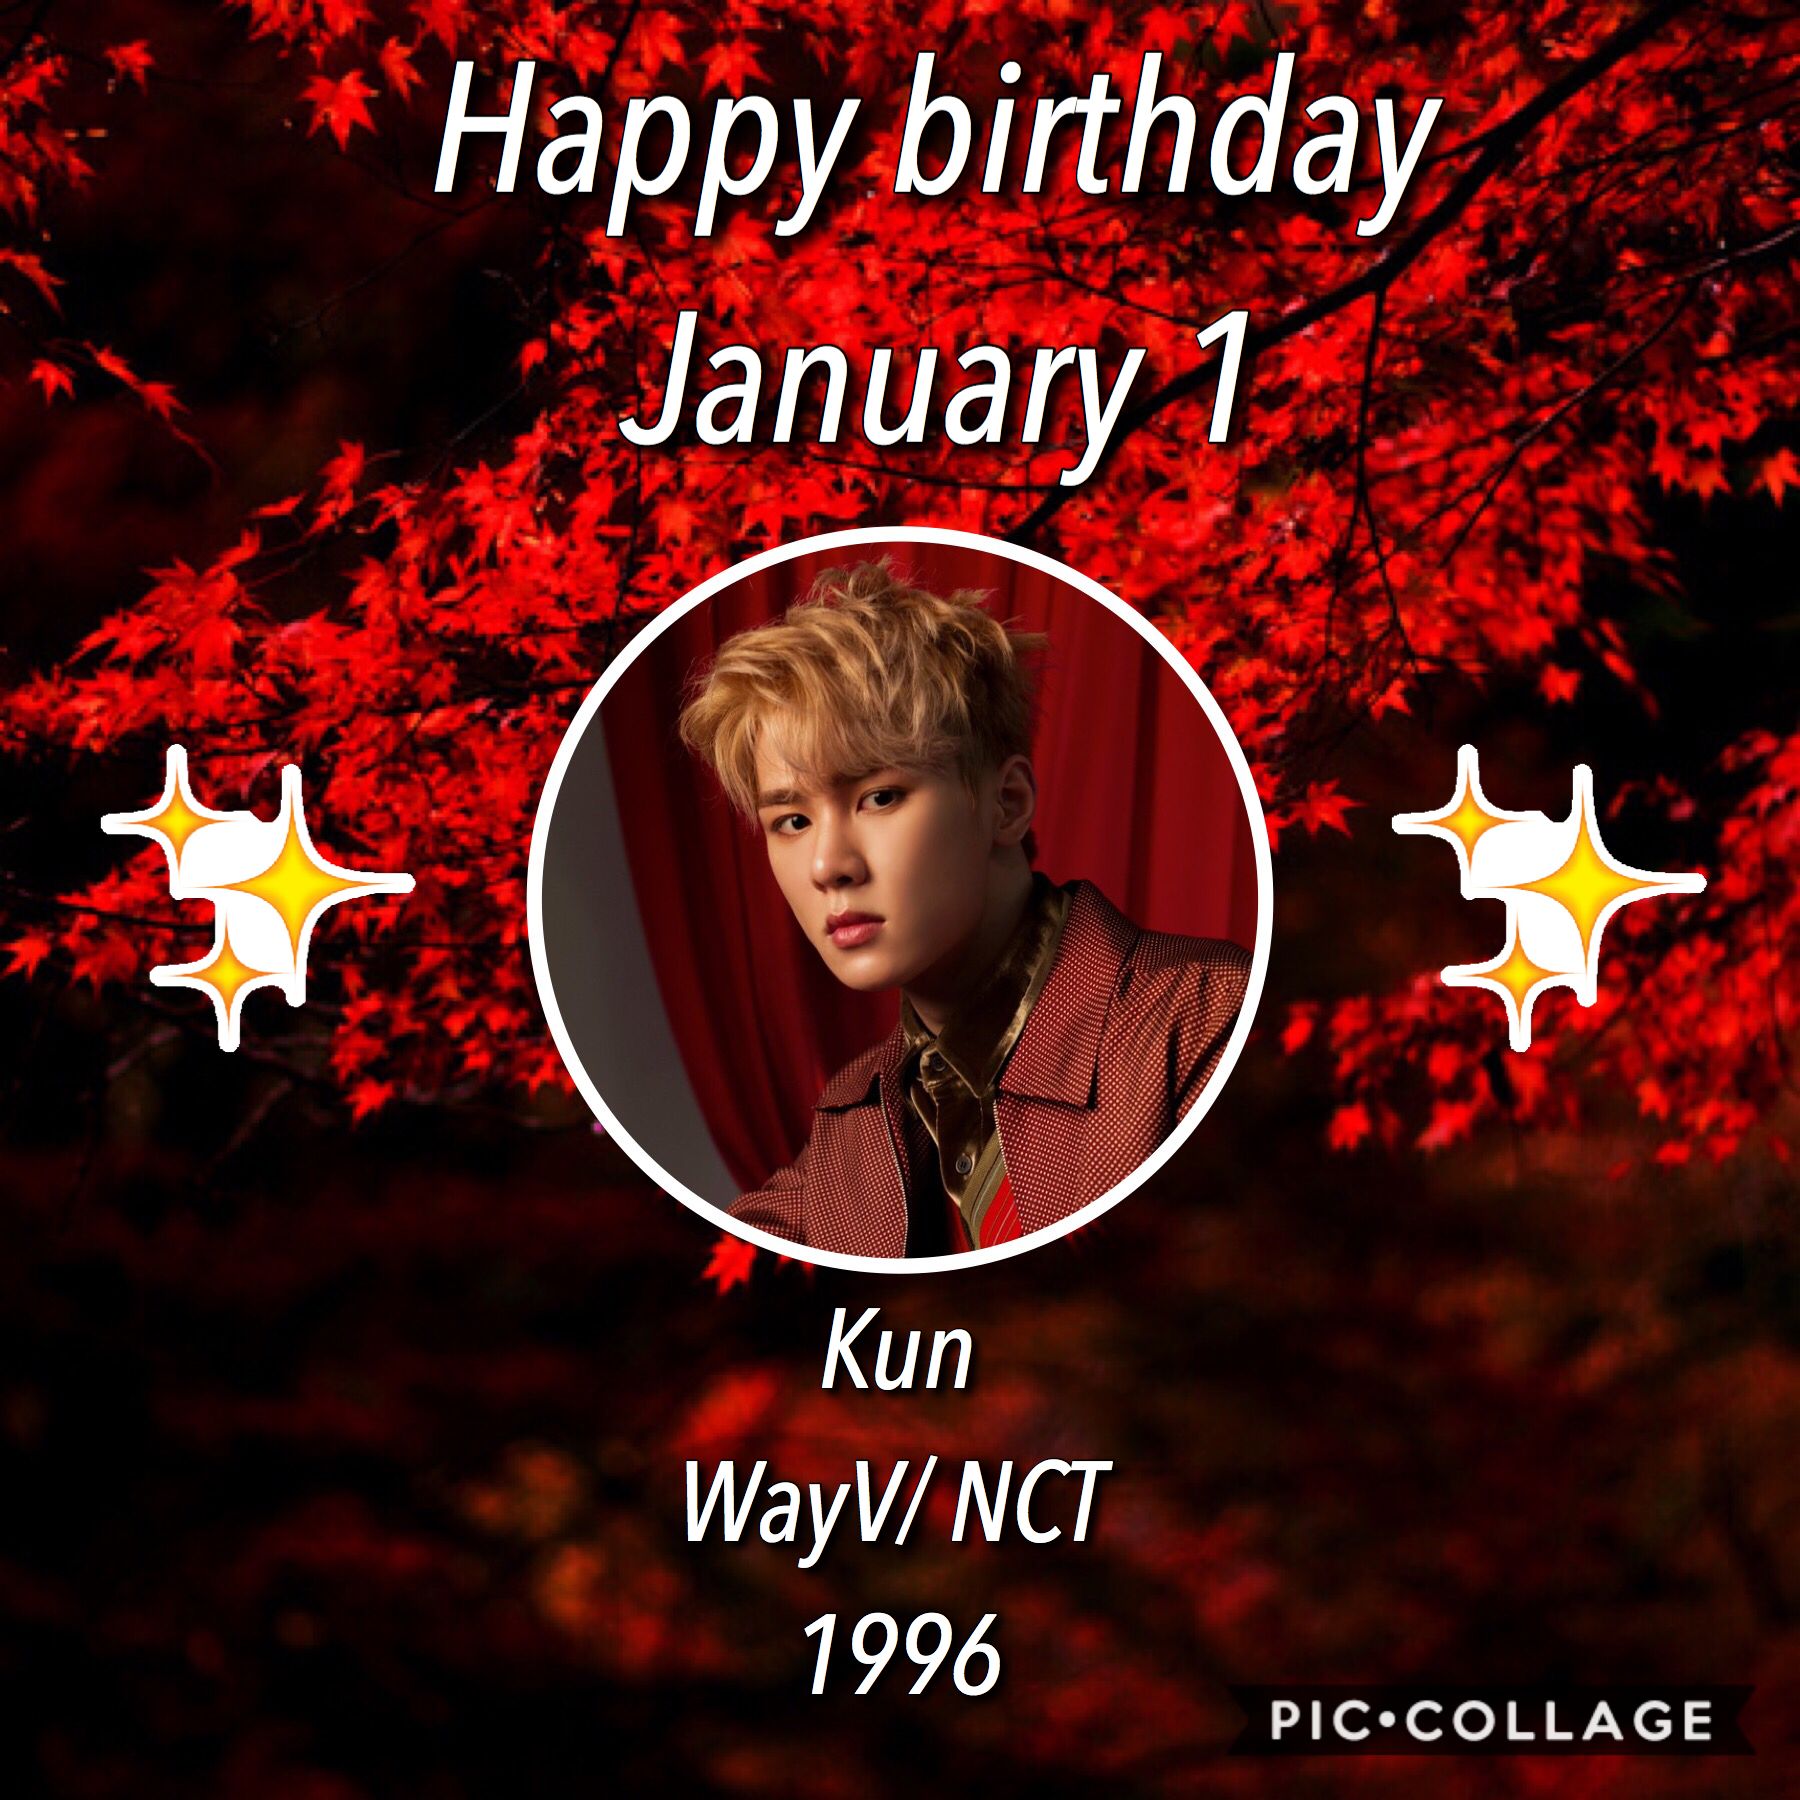 •🎈❄️• Happy birthday Kun!! Happy New Years to you all! I wish the best for everyone in 2020 as well as this account☺️💞 ⛄️❄️~Whoop~❄️⛄️